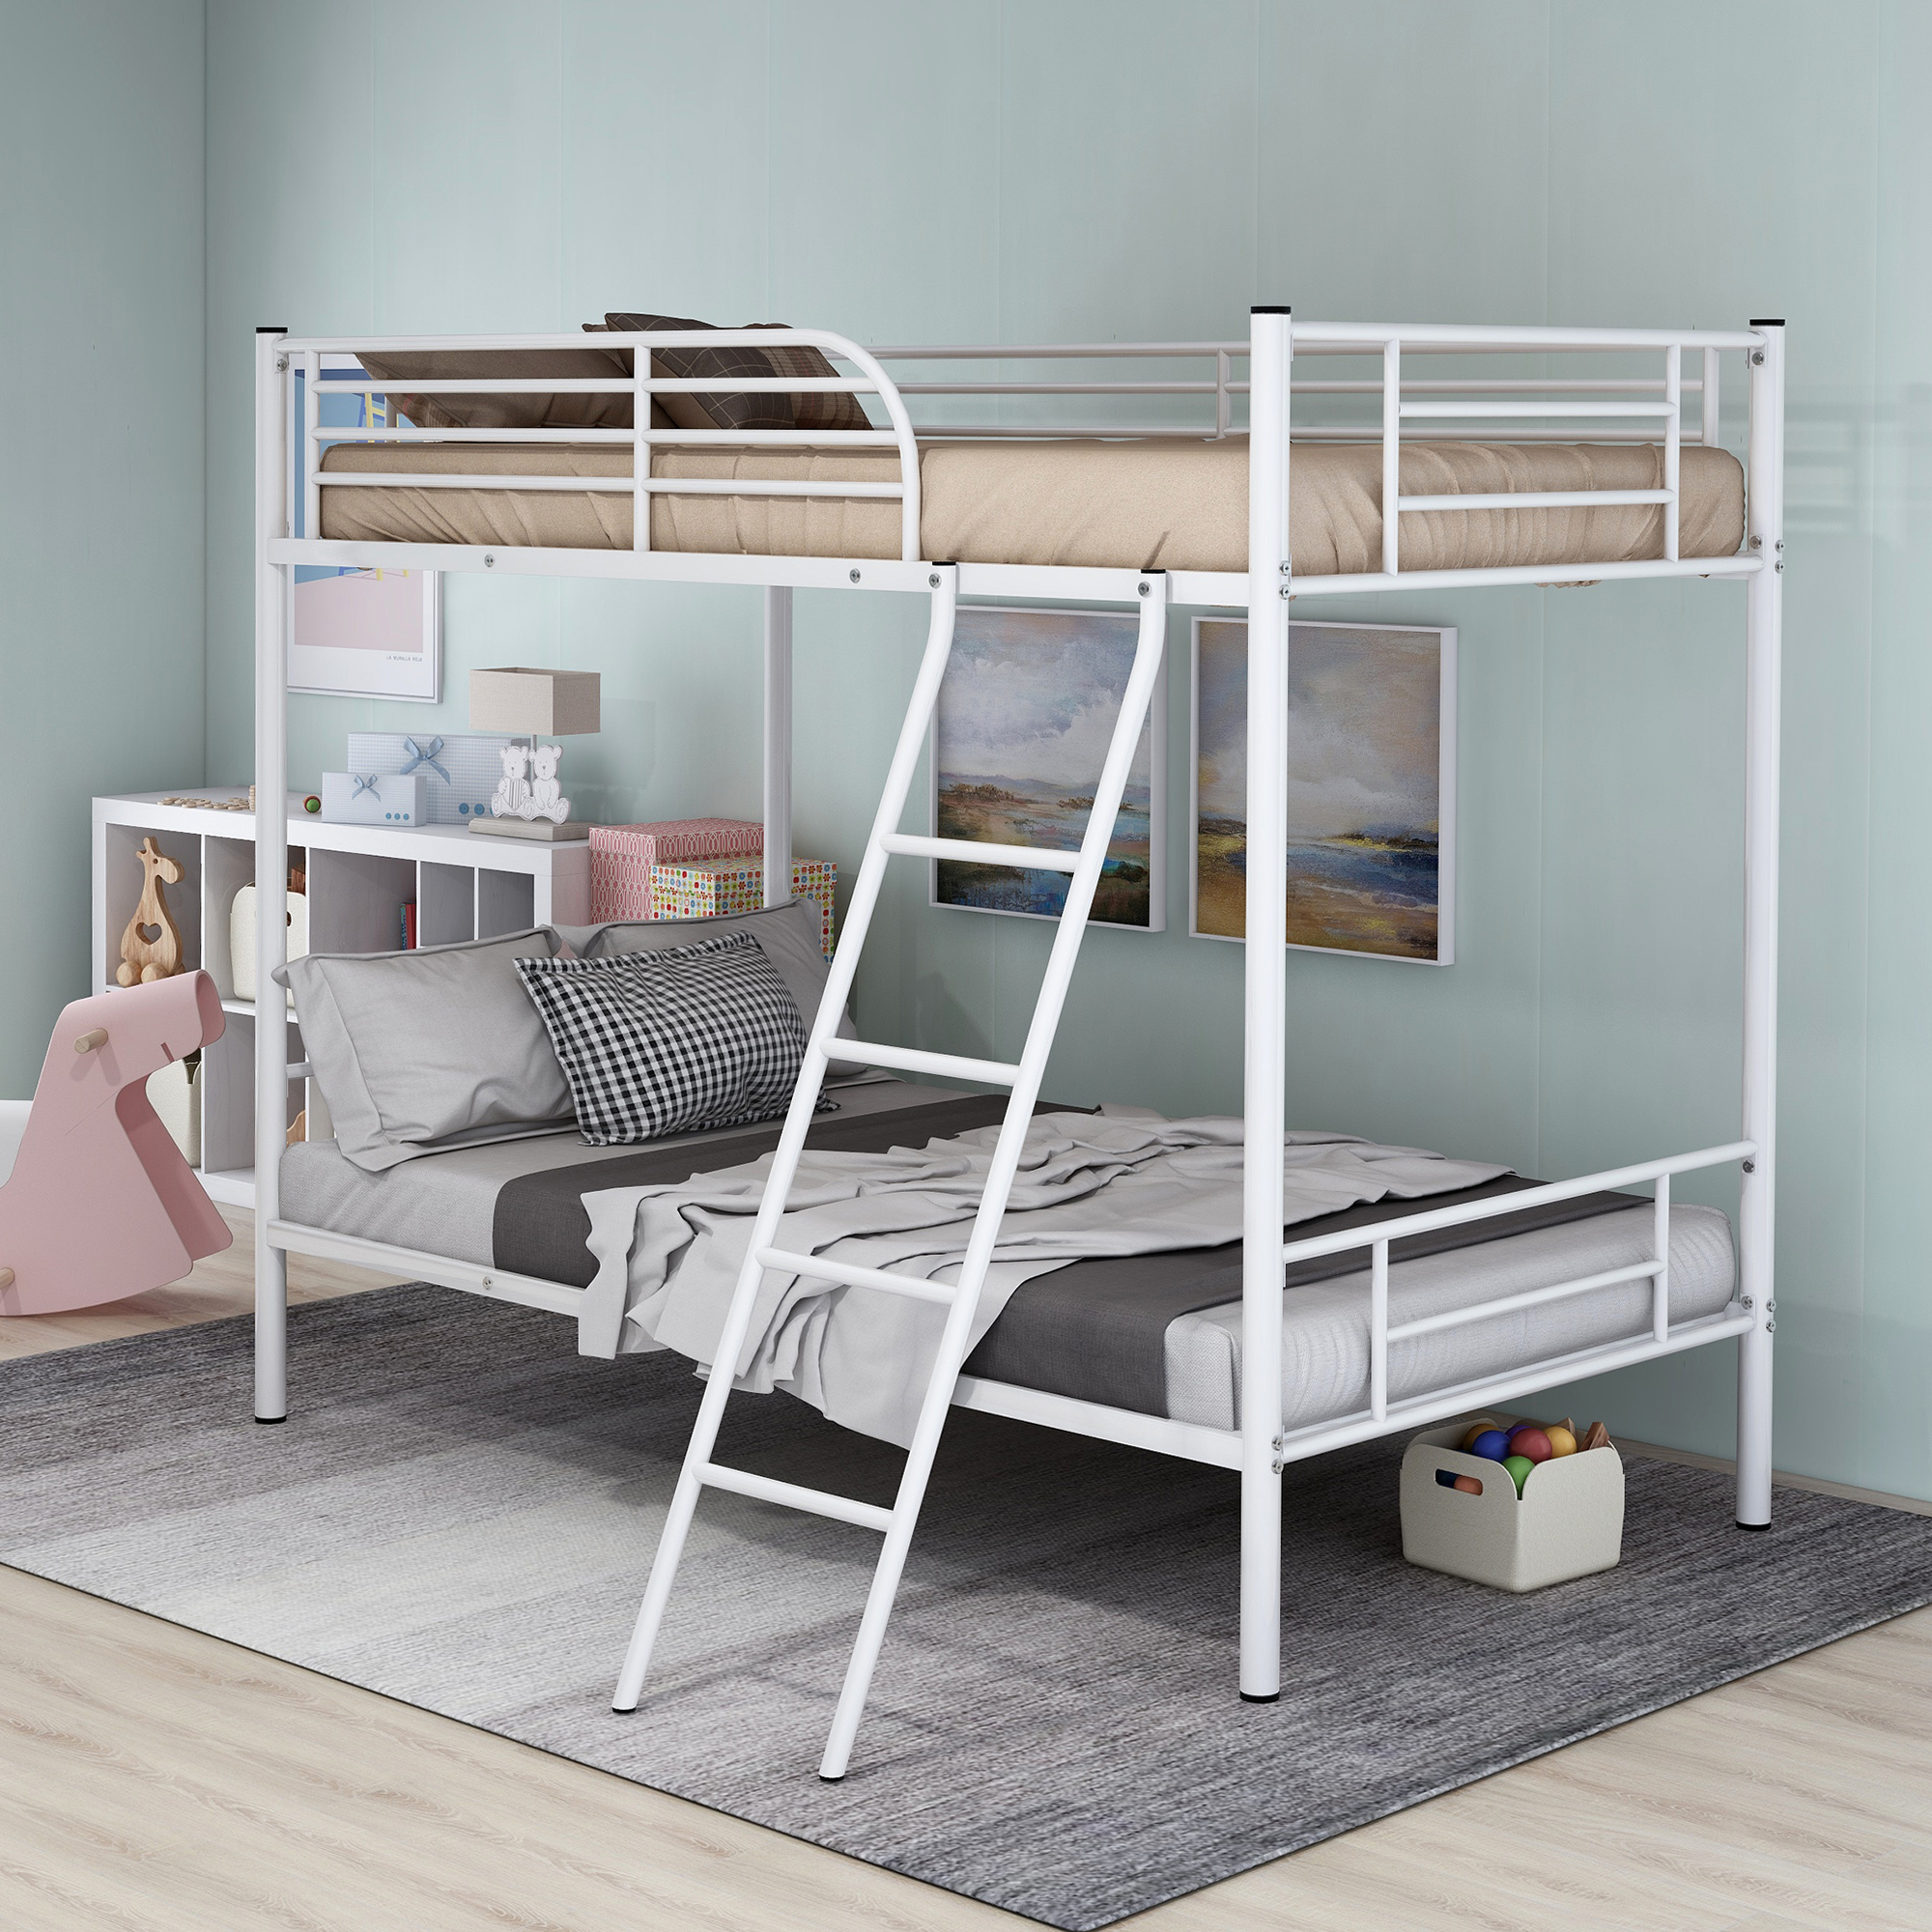 Twin Over Bunk Beds Frame Ladder